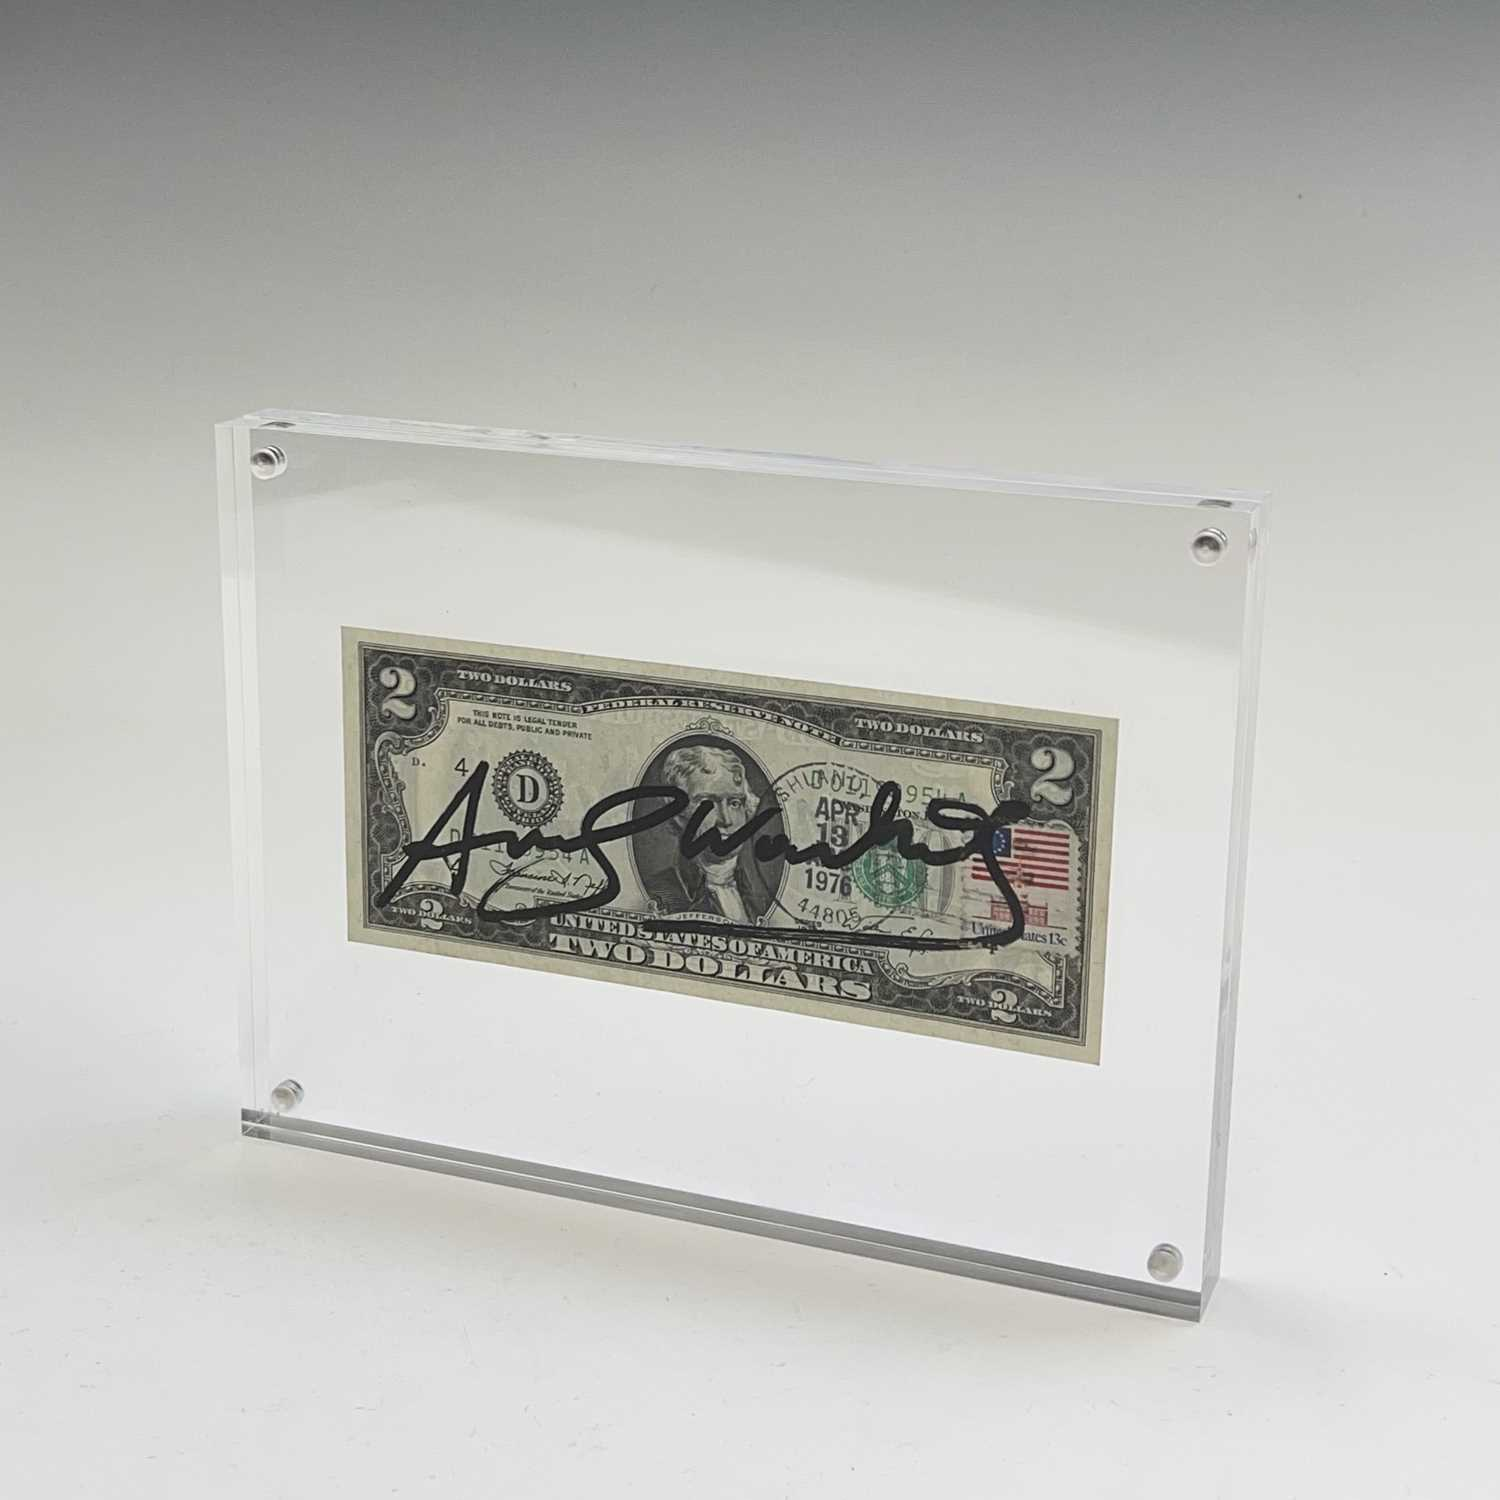 After Andy Warhol, a two-dollar banknote, bears signature, together with accompanying paperwork. - Image 14 of 14